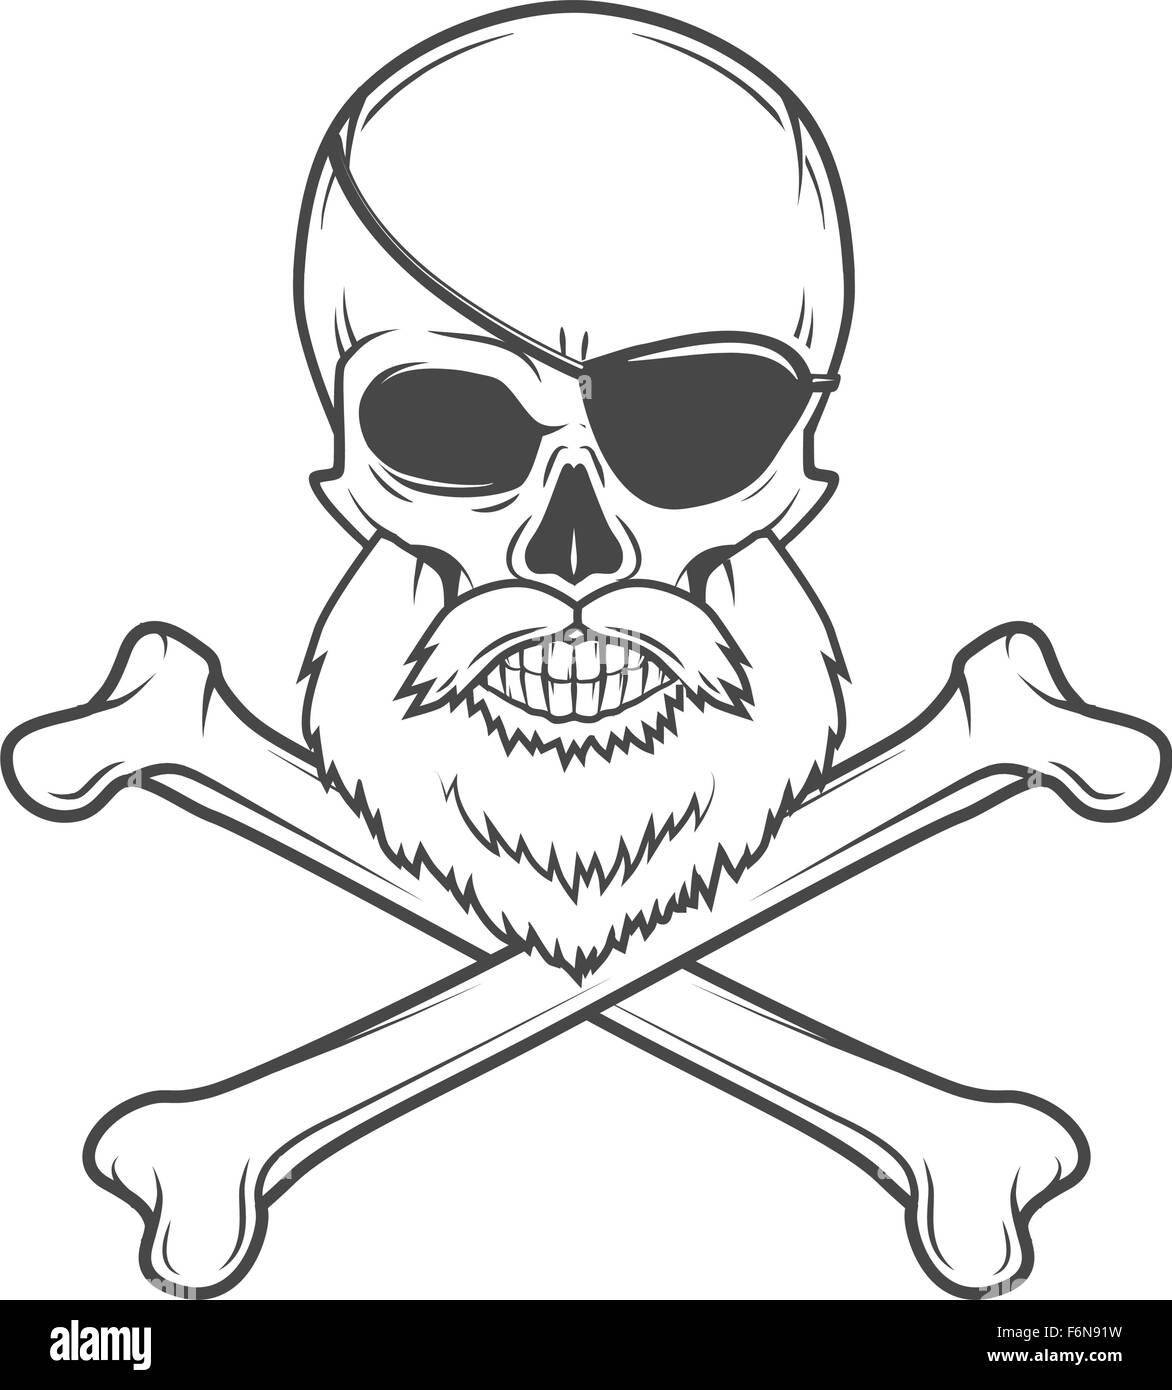 pirate skull with beard eye patch and crossed bones vector